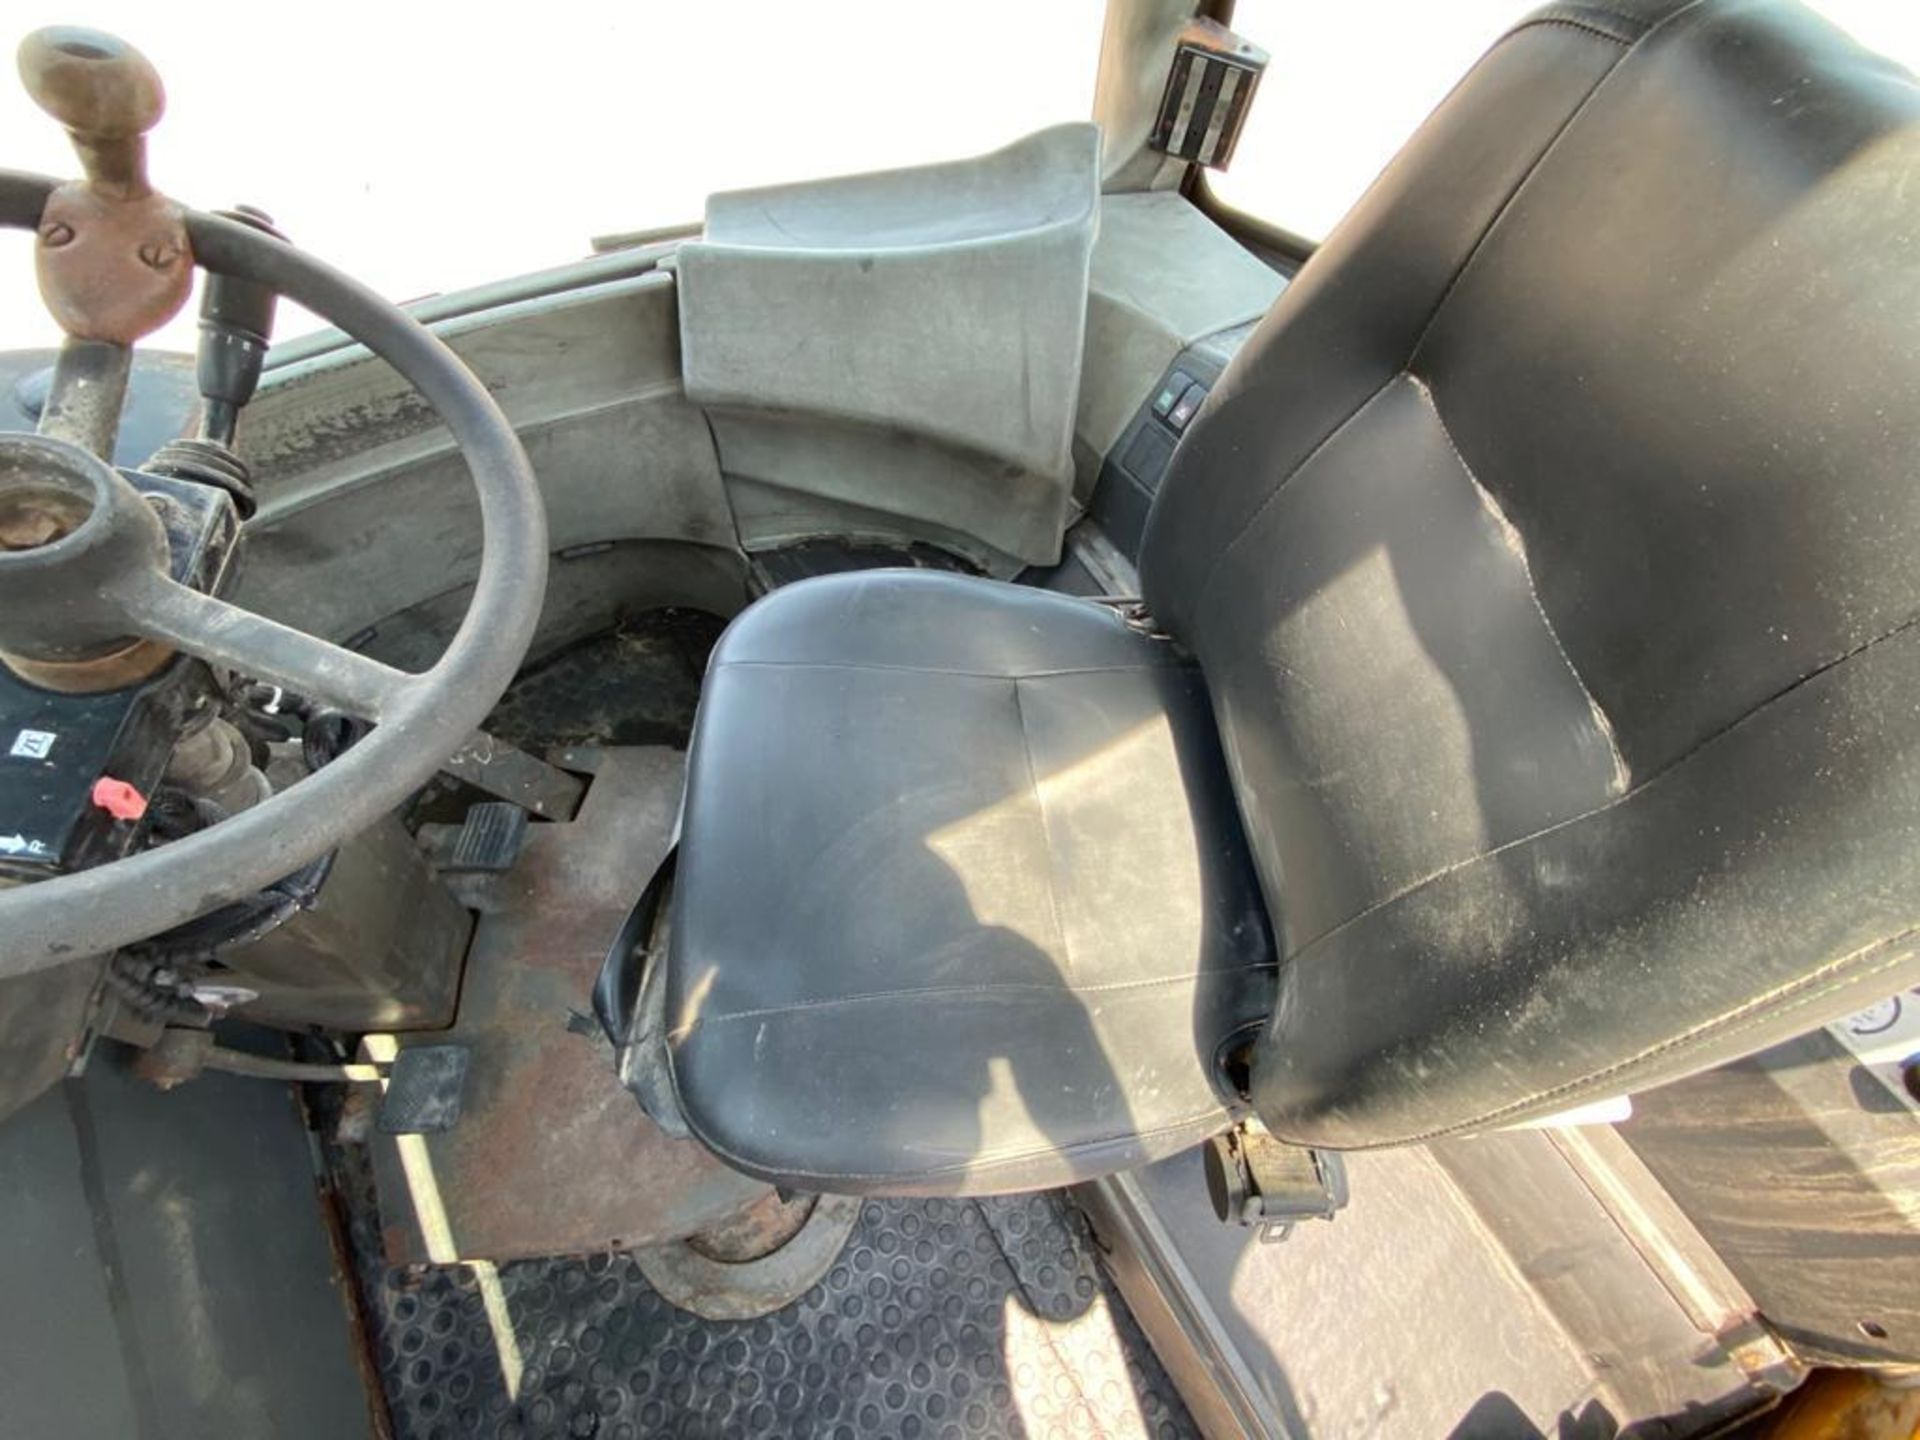 Terberg Capacity 2002 Terminal Tractor, automatic transmission - Image 21 of 57